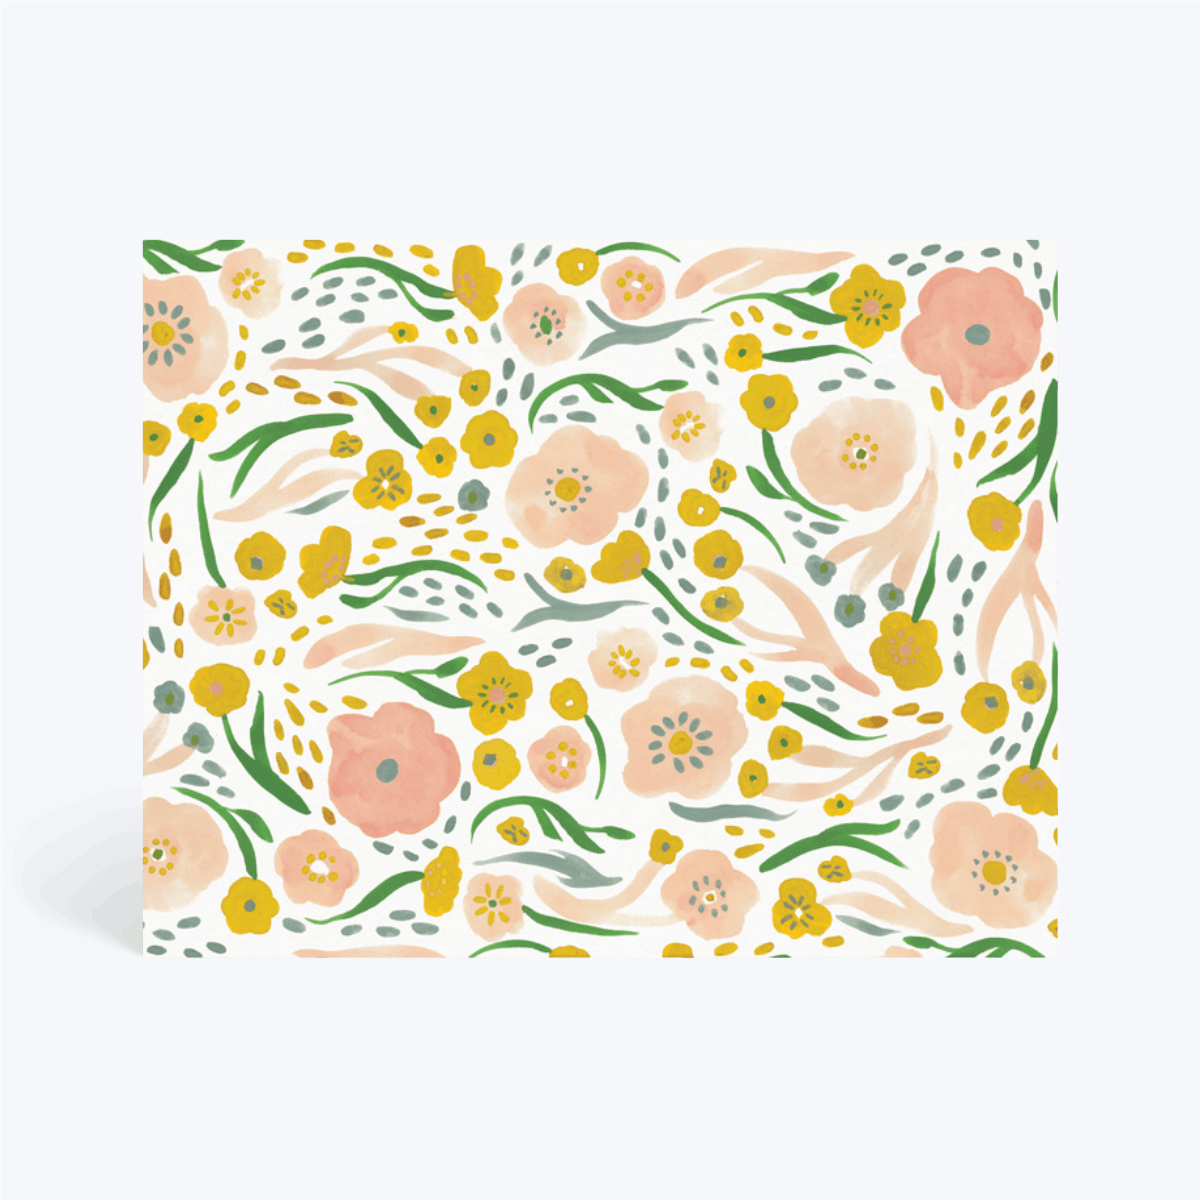 Https%3a%2f%2fwww.papier.com%2fproduct image%2f100009%2f29%2fhappiness blooms 25611 back 1578492289.png?ixlib=rb 1.1